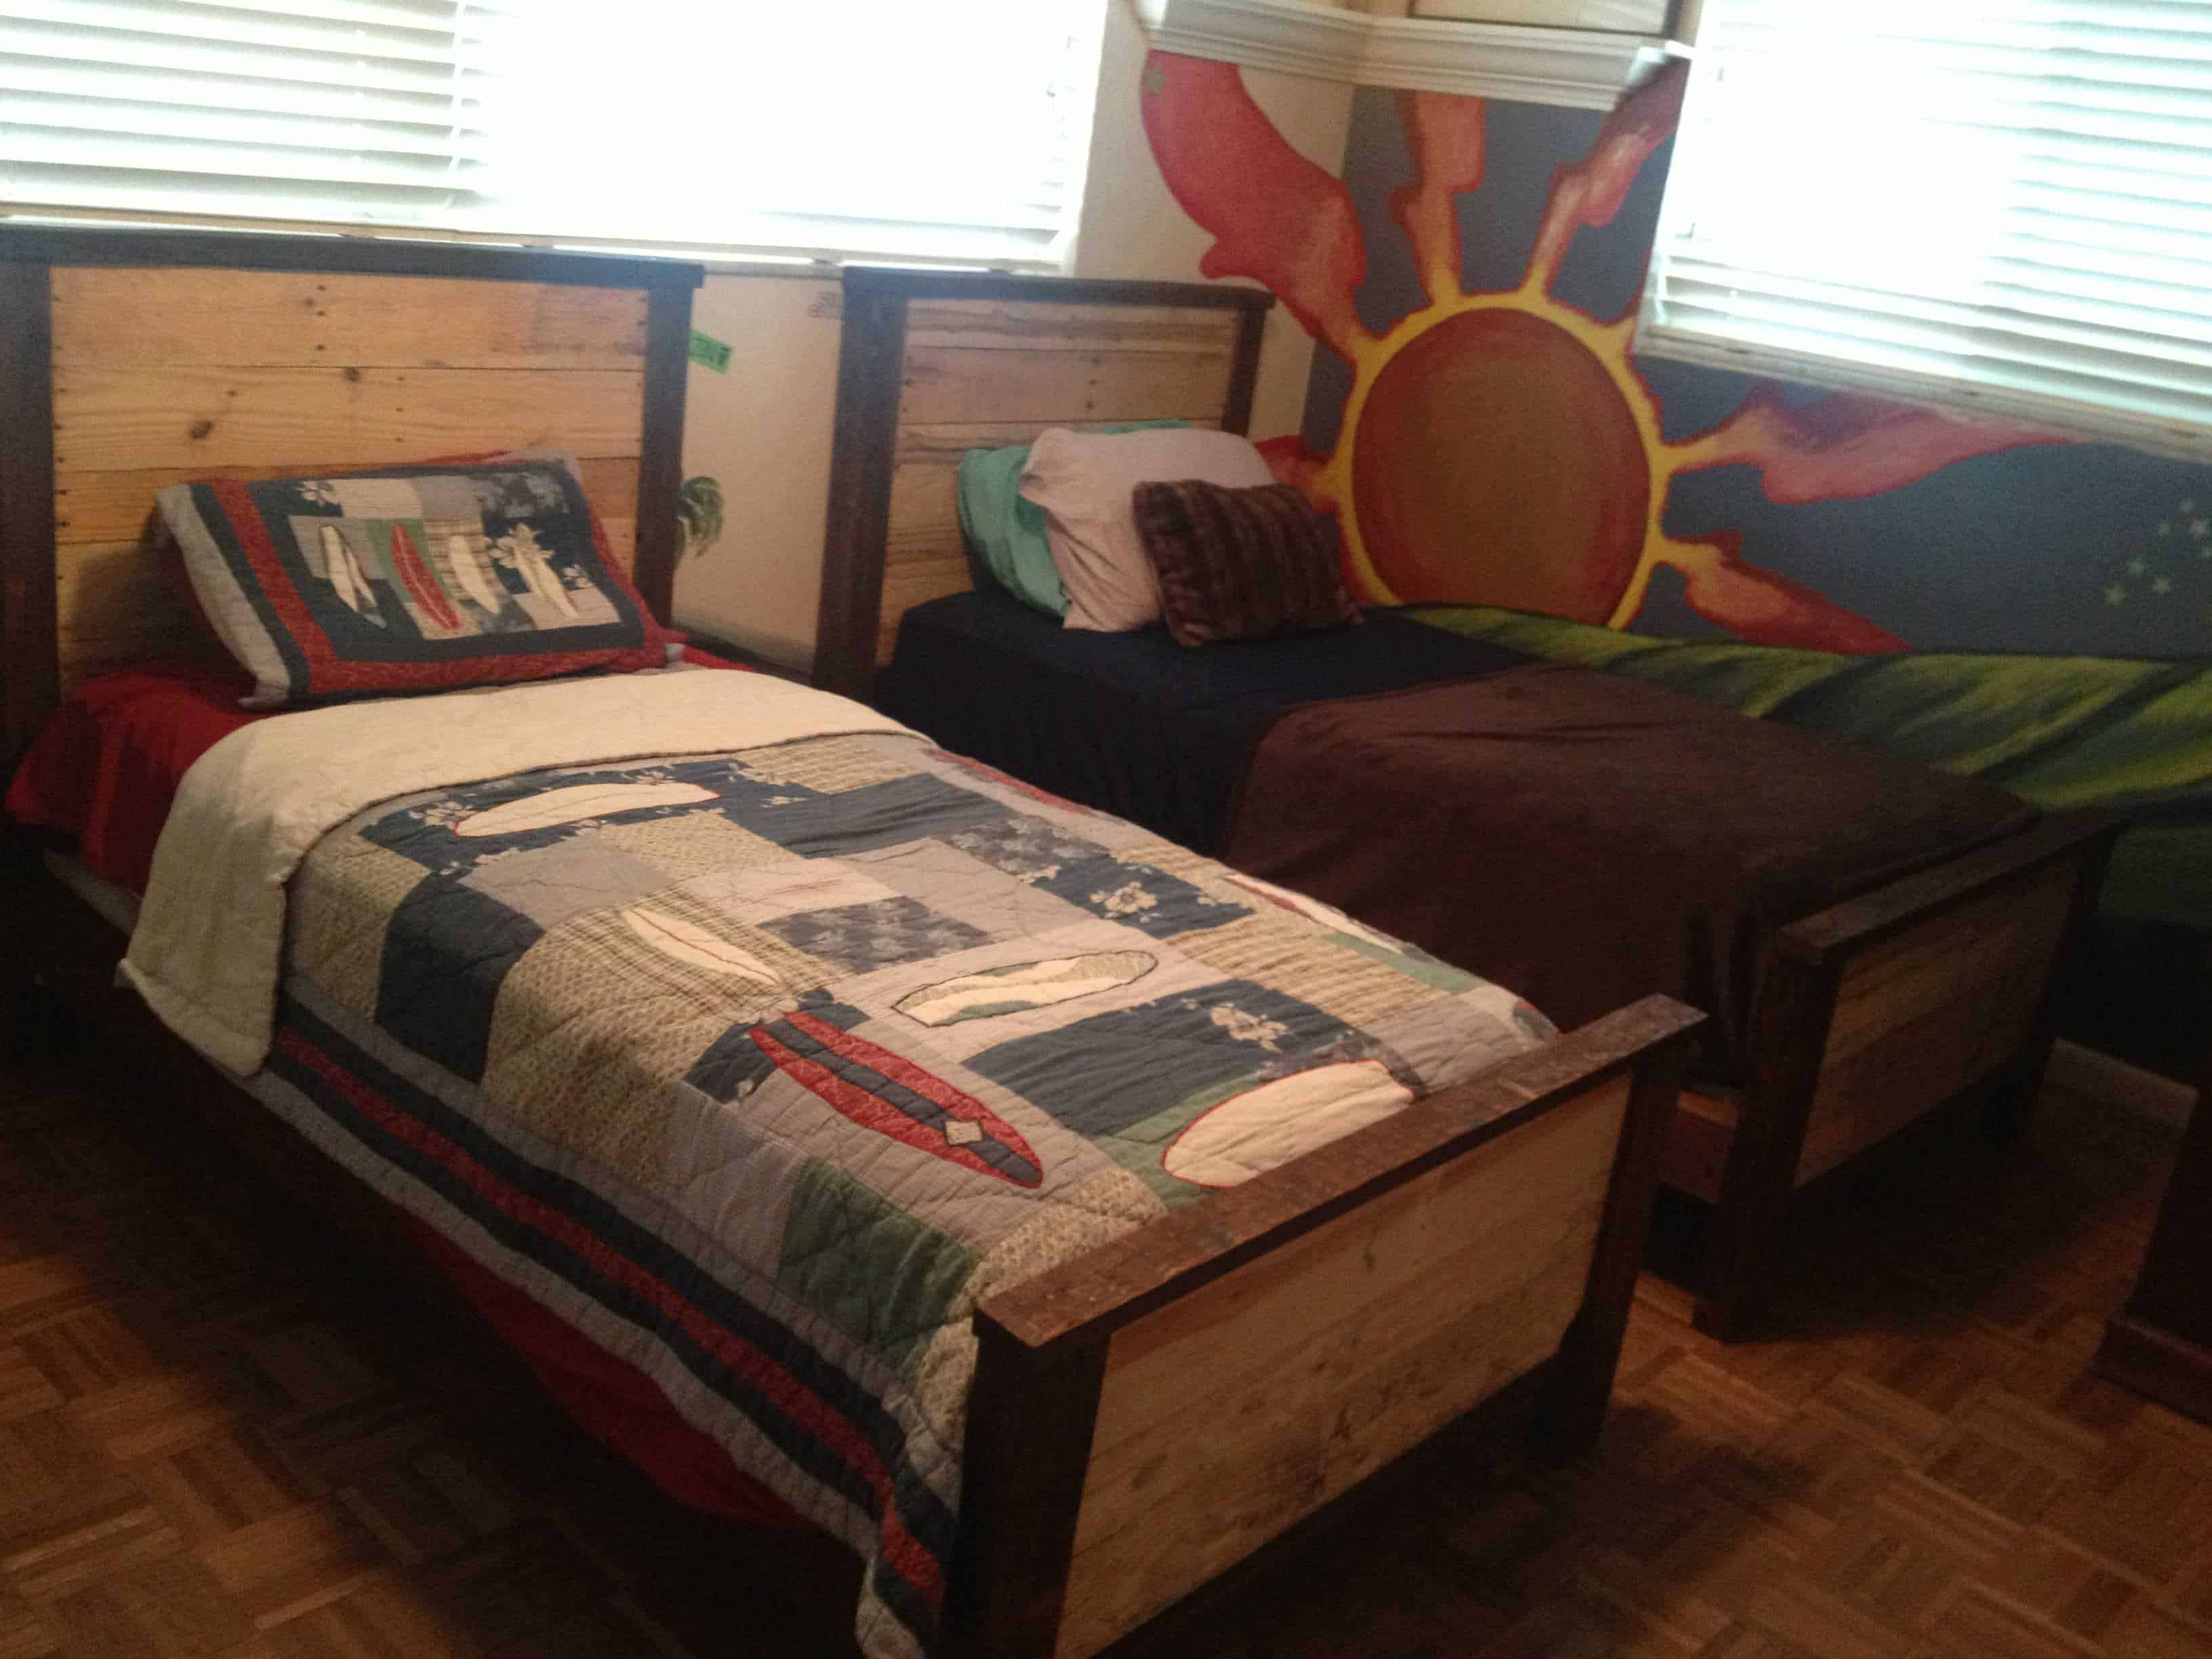 Diy kids pallet bed images galleries for Diy kids pallet bed